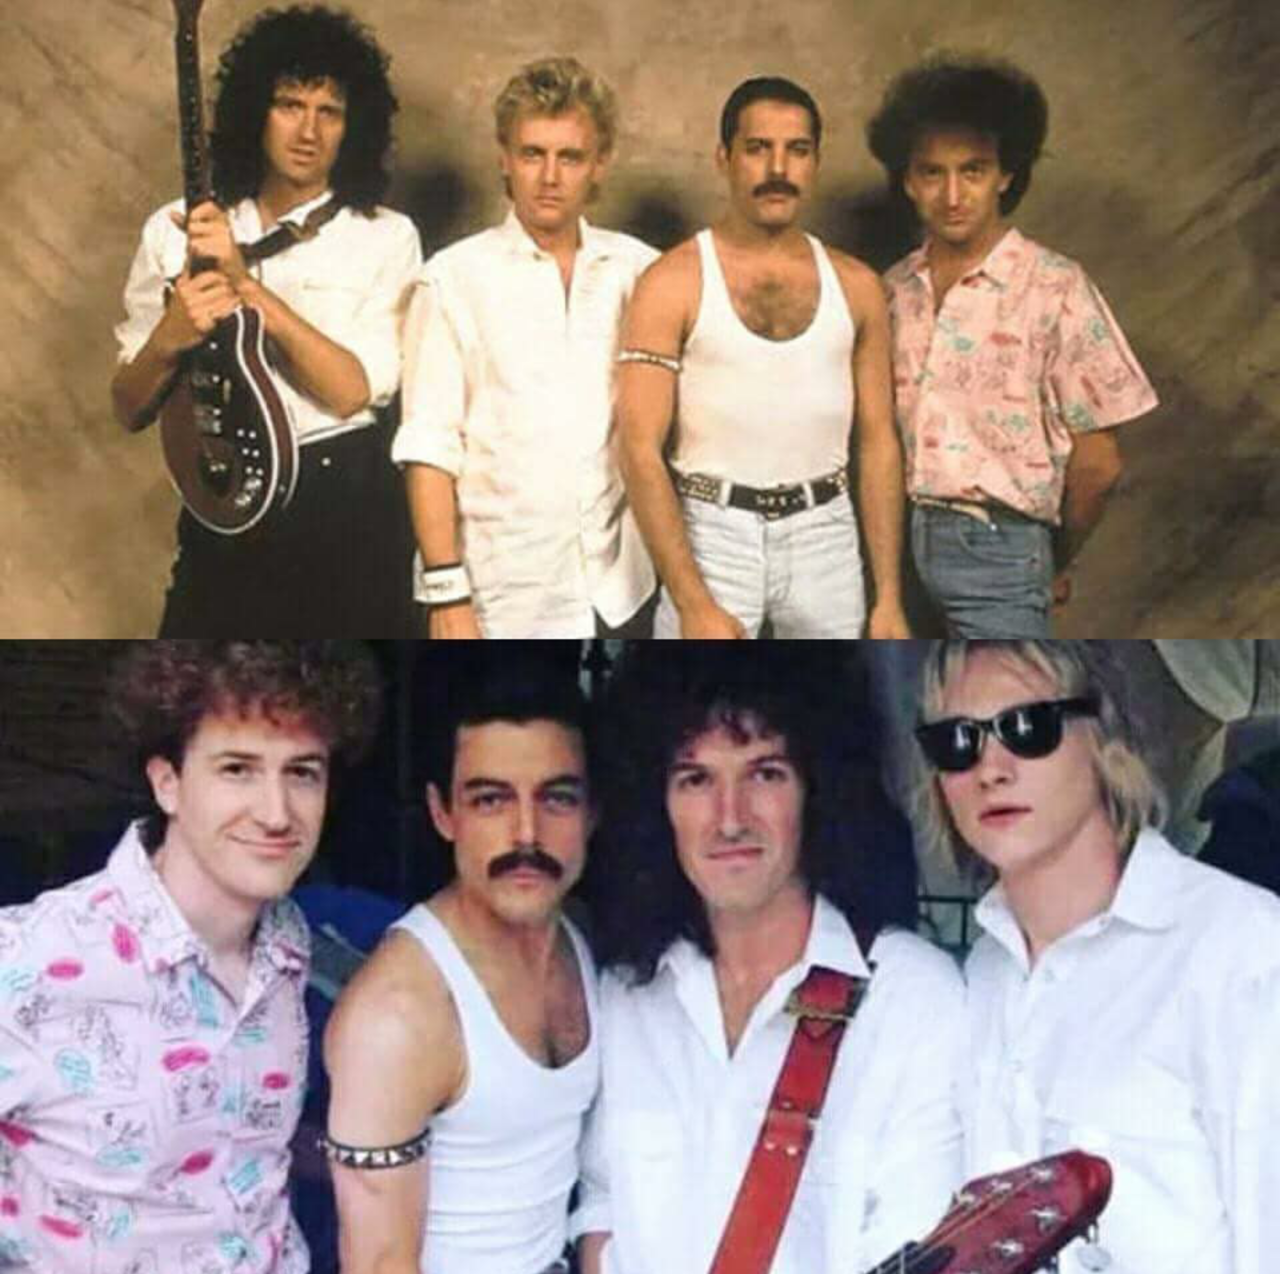 The original band members of Queen (top) compared to the cast of Bohemian Rhapsody (bottom).